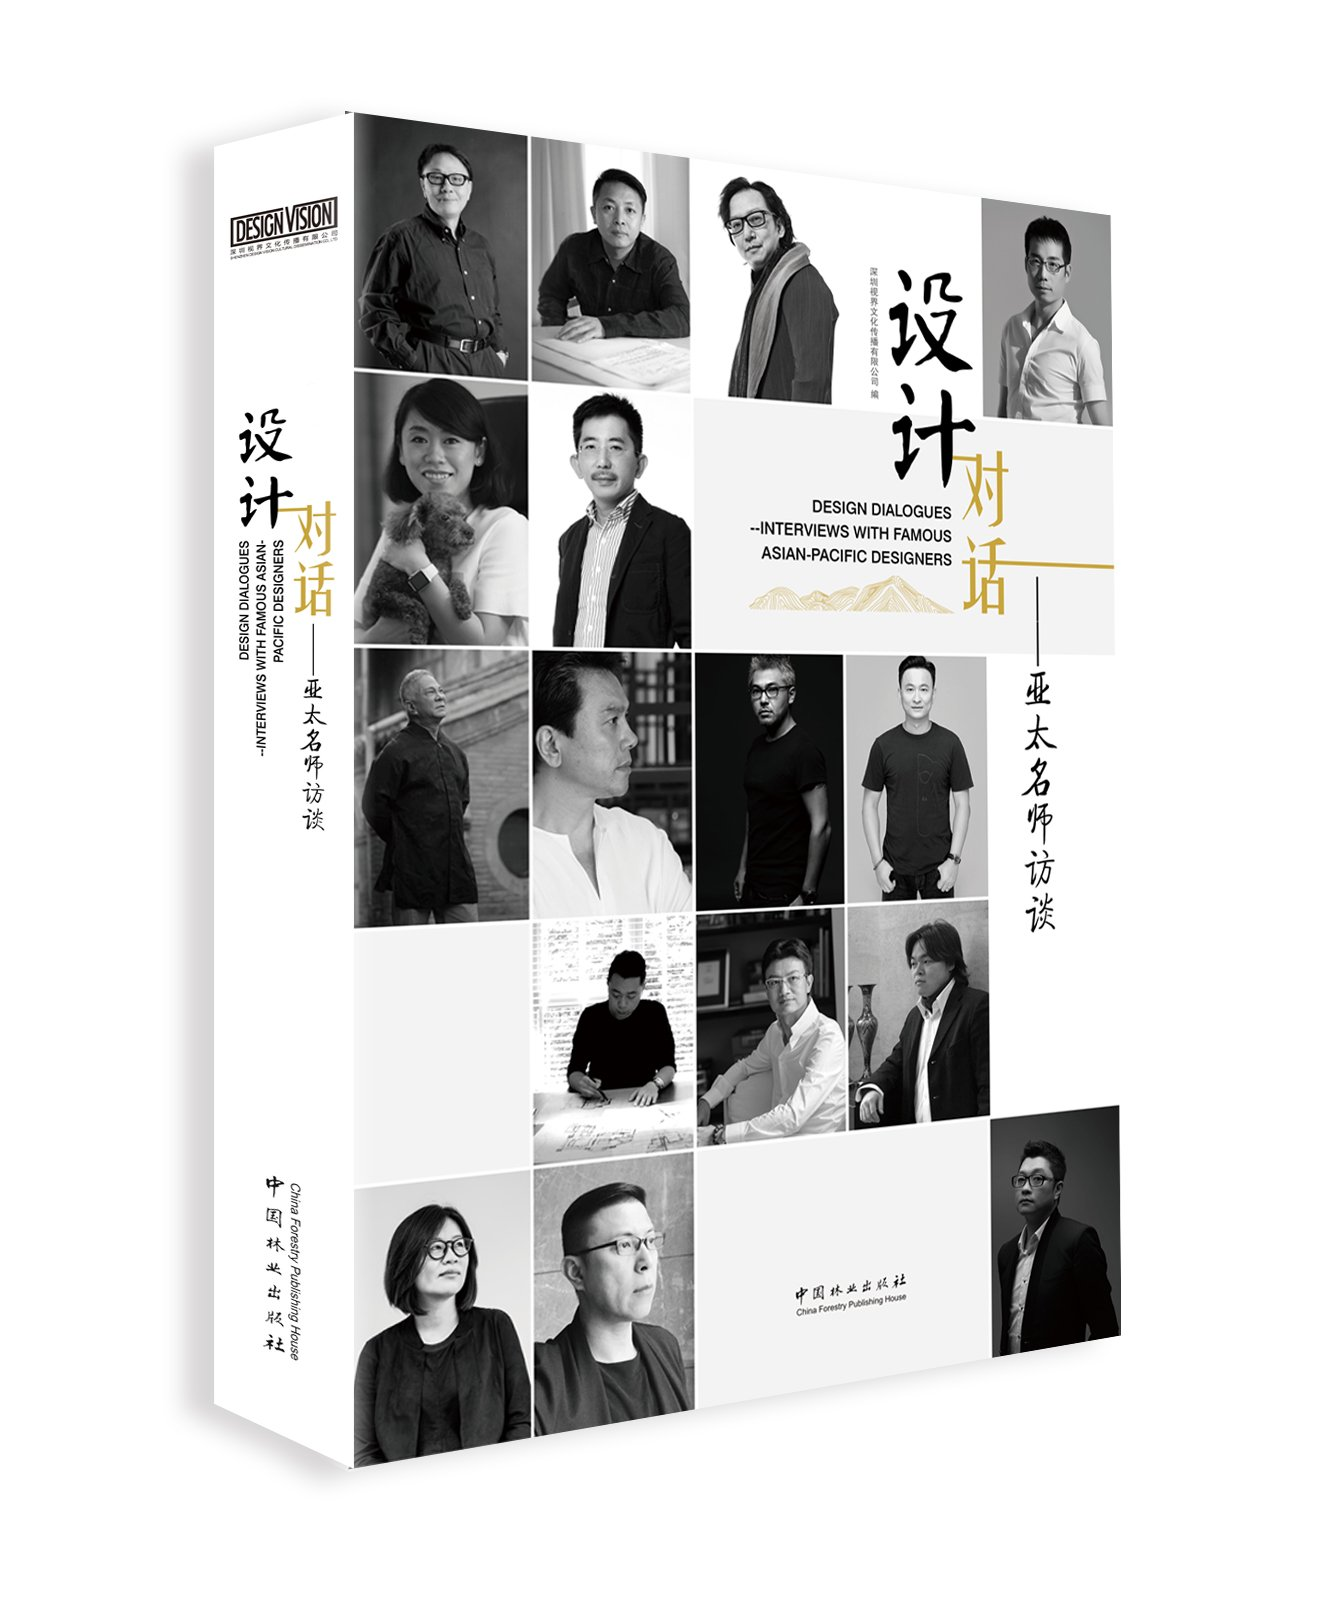 Download Design Dialogues—Interviews with Famous Asian-Pacific Designers Interior Design Project Share ebook